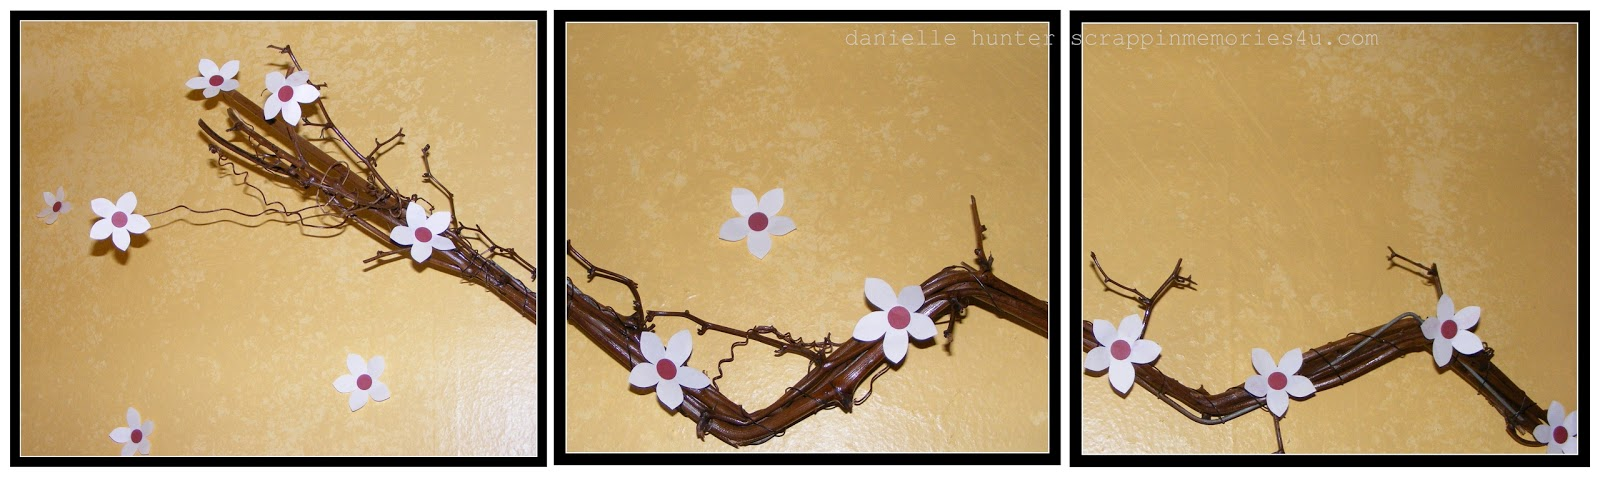 Snap.Scrap.Blog.Tweet: How To Make Wall Art With Handmade Cherry ...